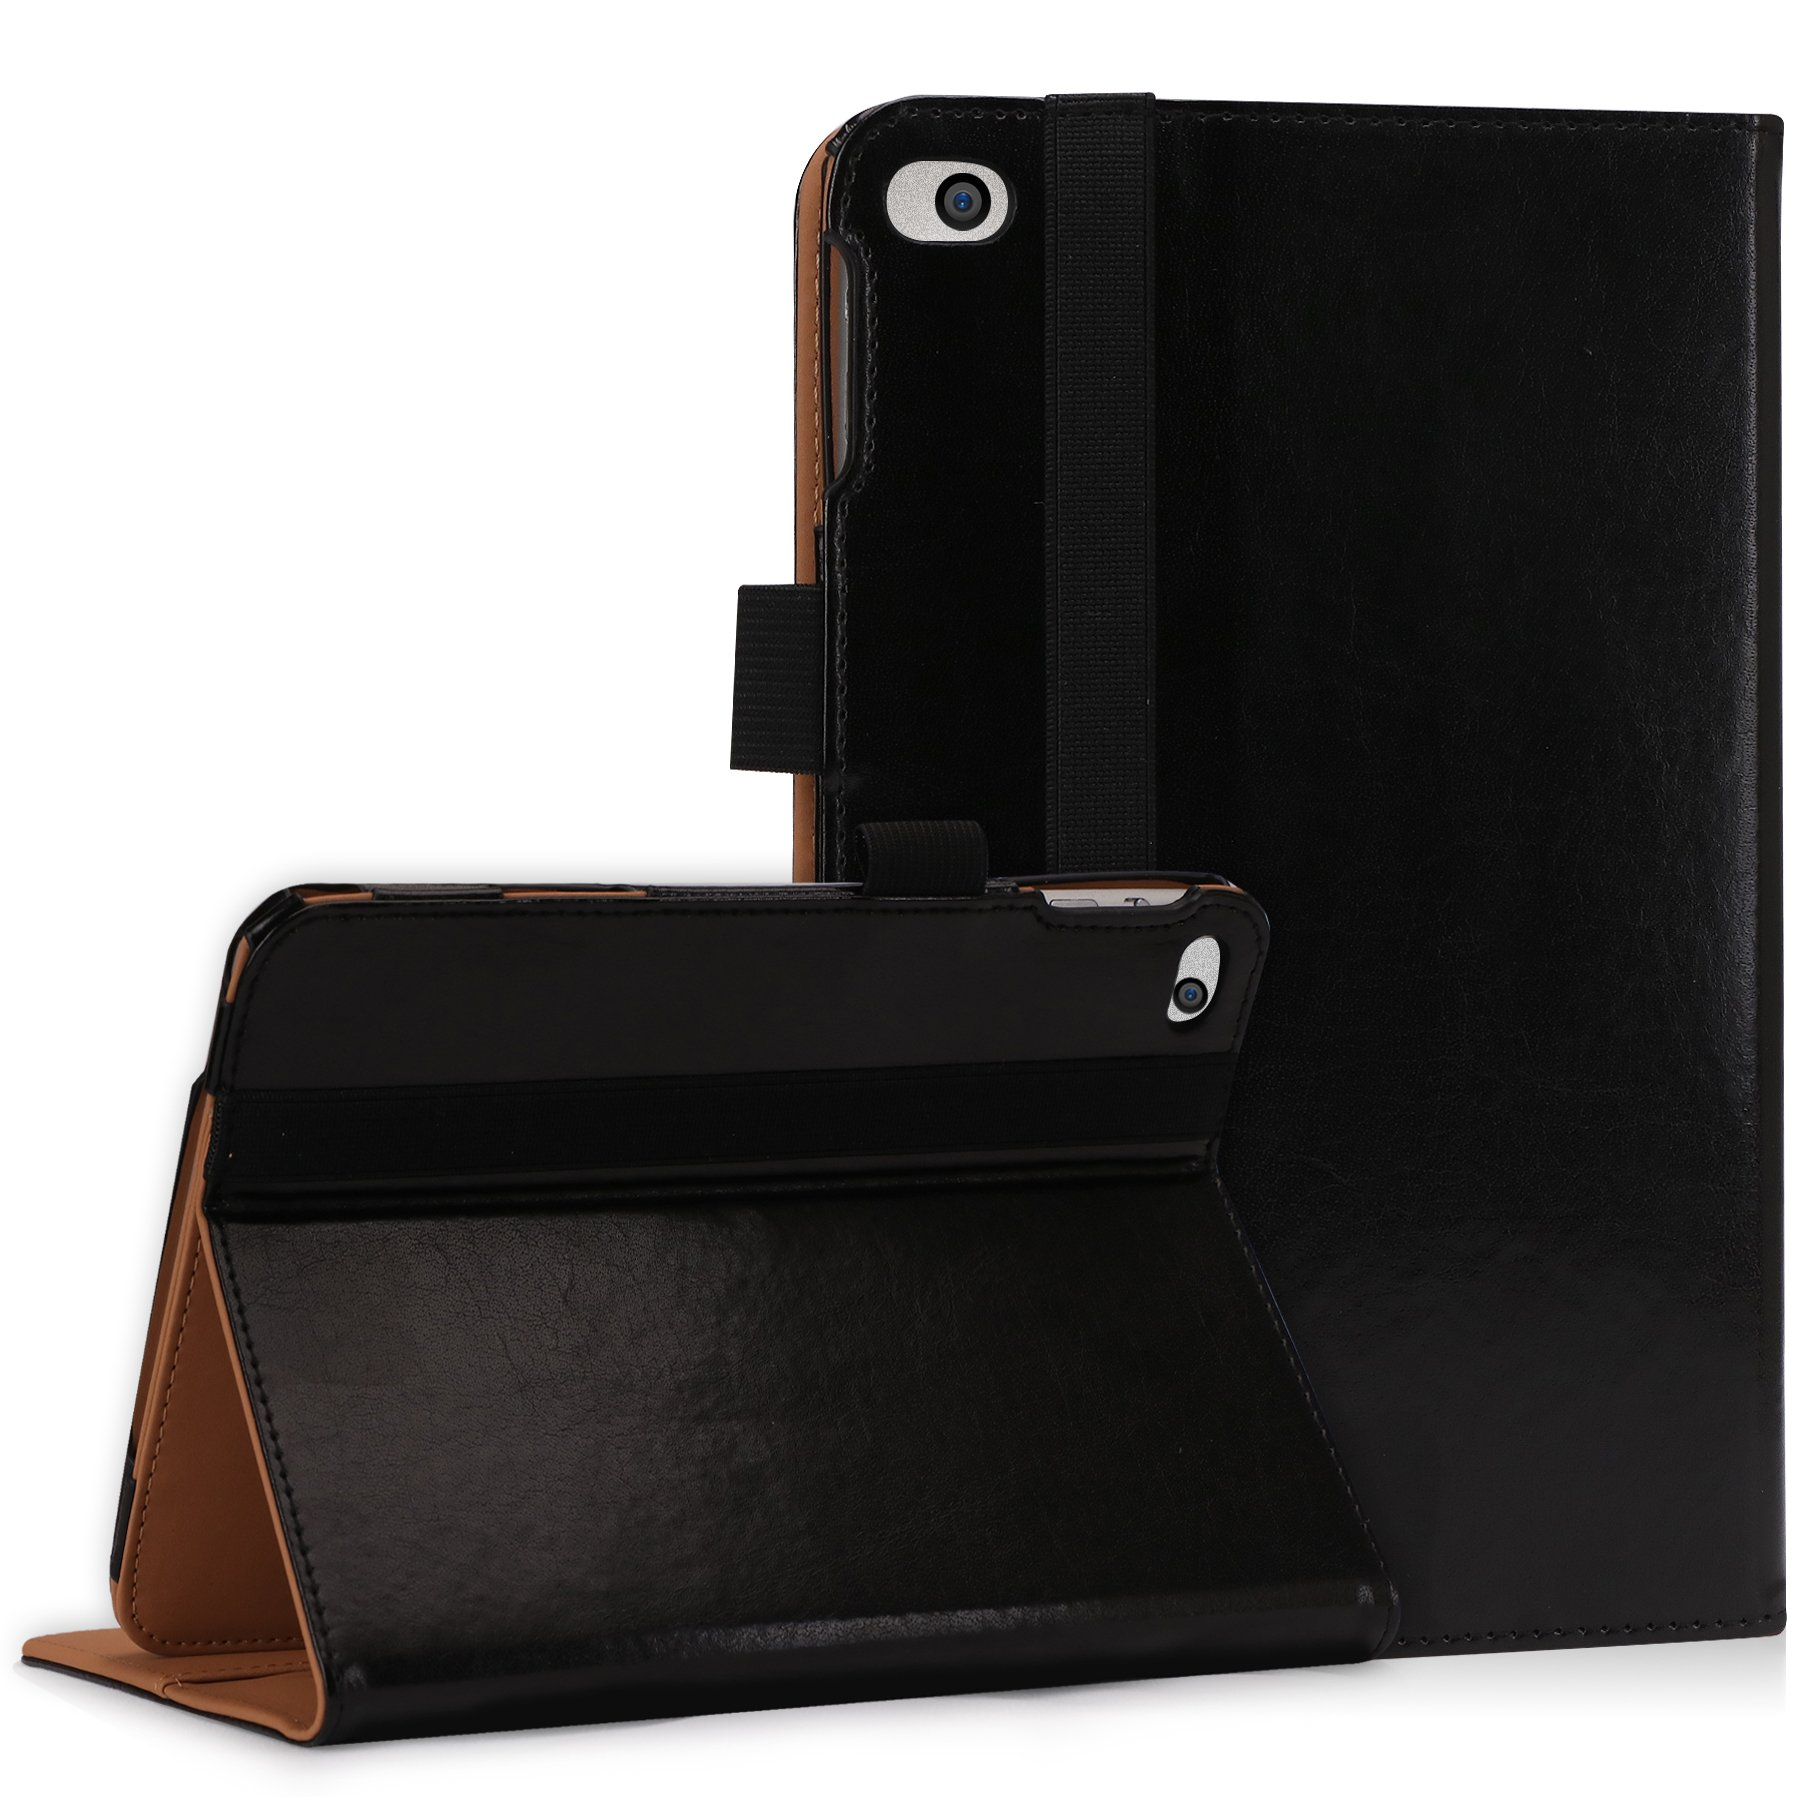 FYY Case for iPad Mini 4 - [Super Functional Series] Premium PU Leather Case with Card Slots, Note Holder, Hand Strap and Elastic Strap for Apple iPad Mini 4 Black (With Auto Wake/Sleep Feature)